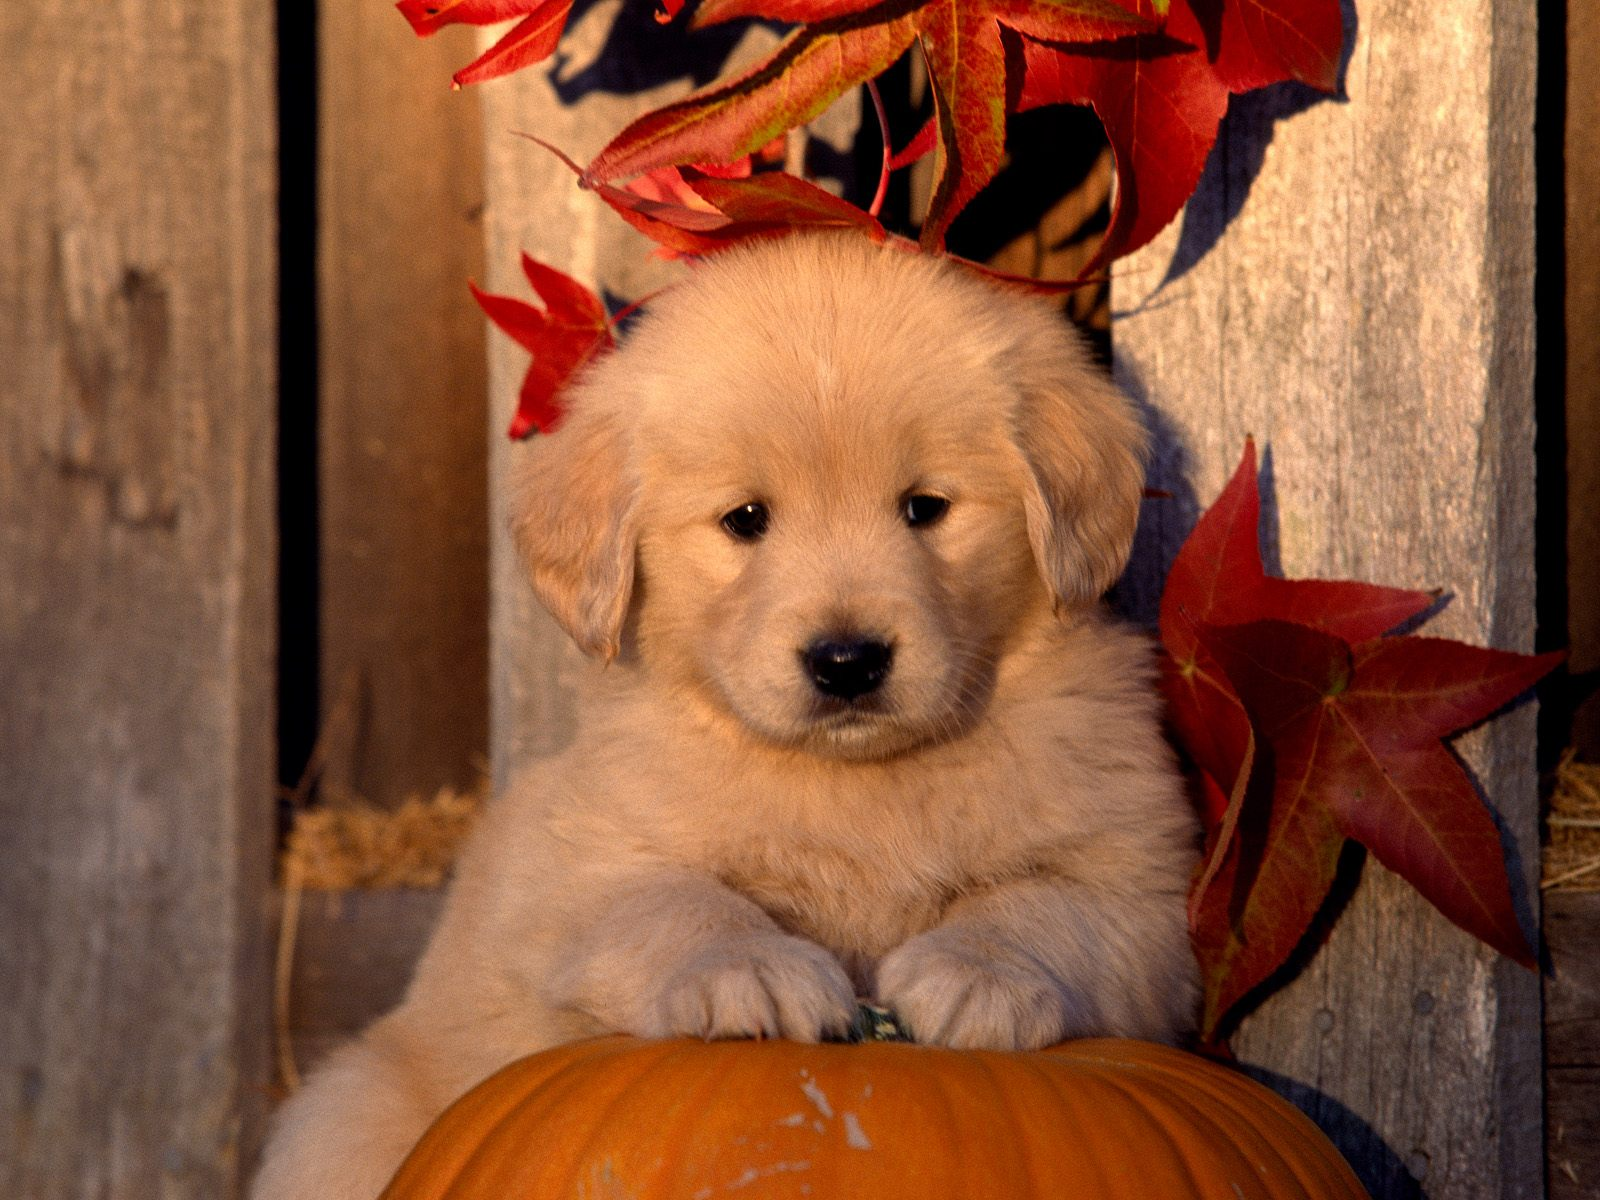 Autumn Golden Retriever puppy photo and wallpaper. Beautiful